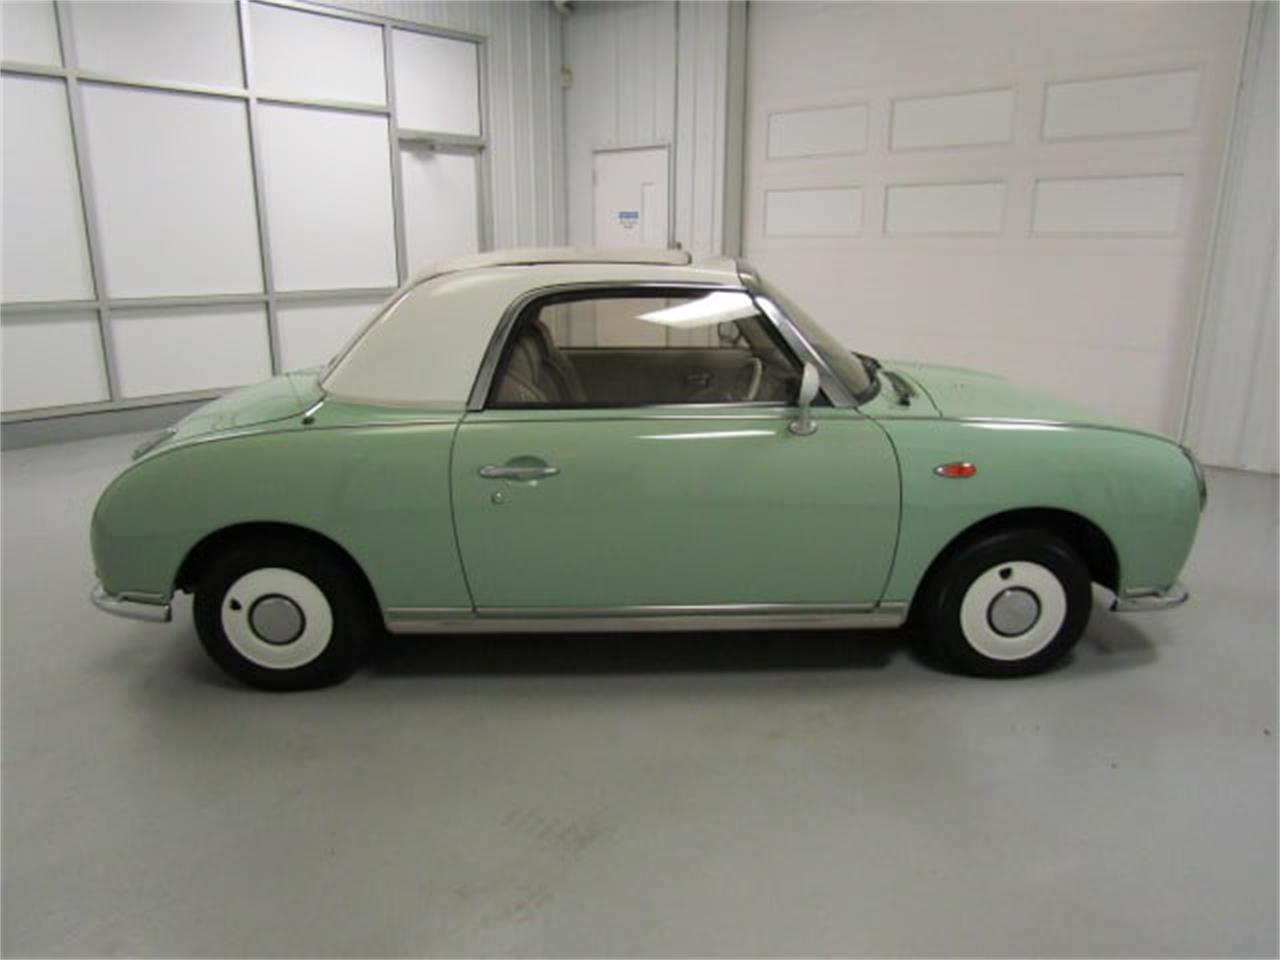 Large Picture of '91 Nissan Figaro - $9,993.00 Offered by Duncan Imports & Classic Cars - JL6C